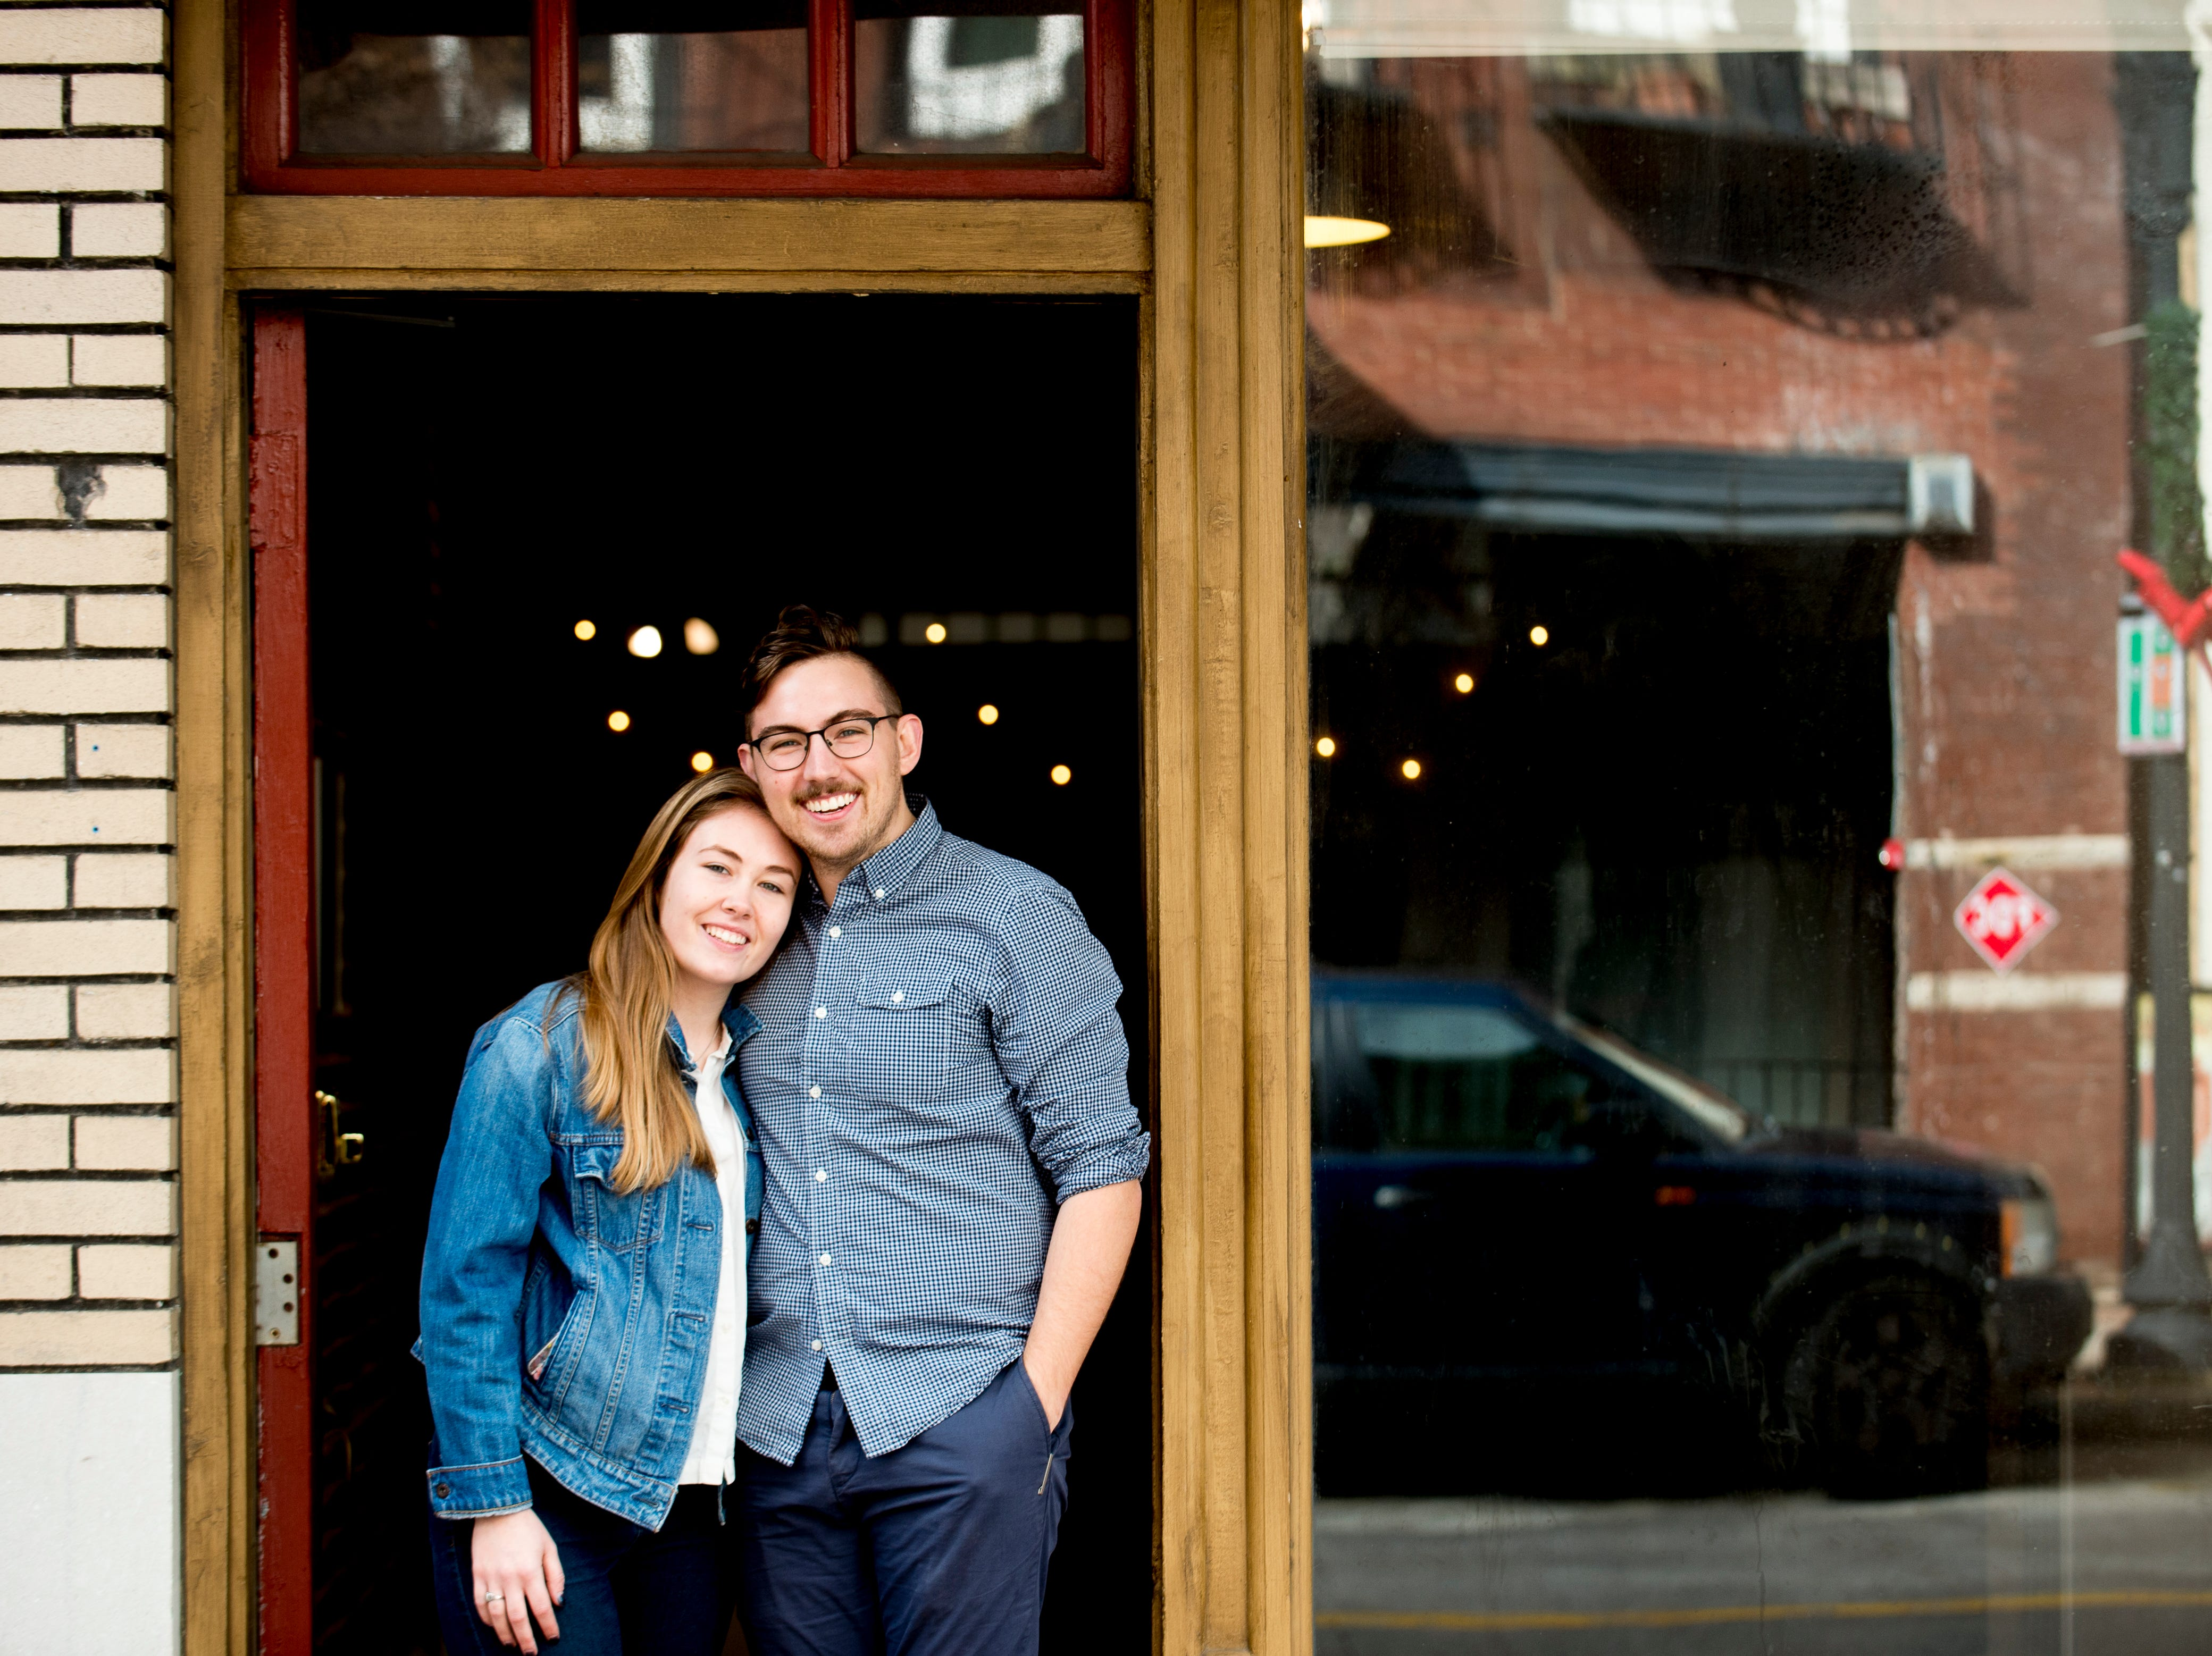 Katherine and Logan Higgins pose for a photo in front of their future Jacks of Knoxville shop at 133c South Gay Street in Knoxville, Tennessee on Friday, January 4, 2019. The shop, which is planned to open in February, will have a strong focus on selling arts and crafts made by local makers.